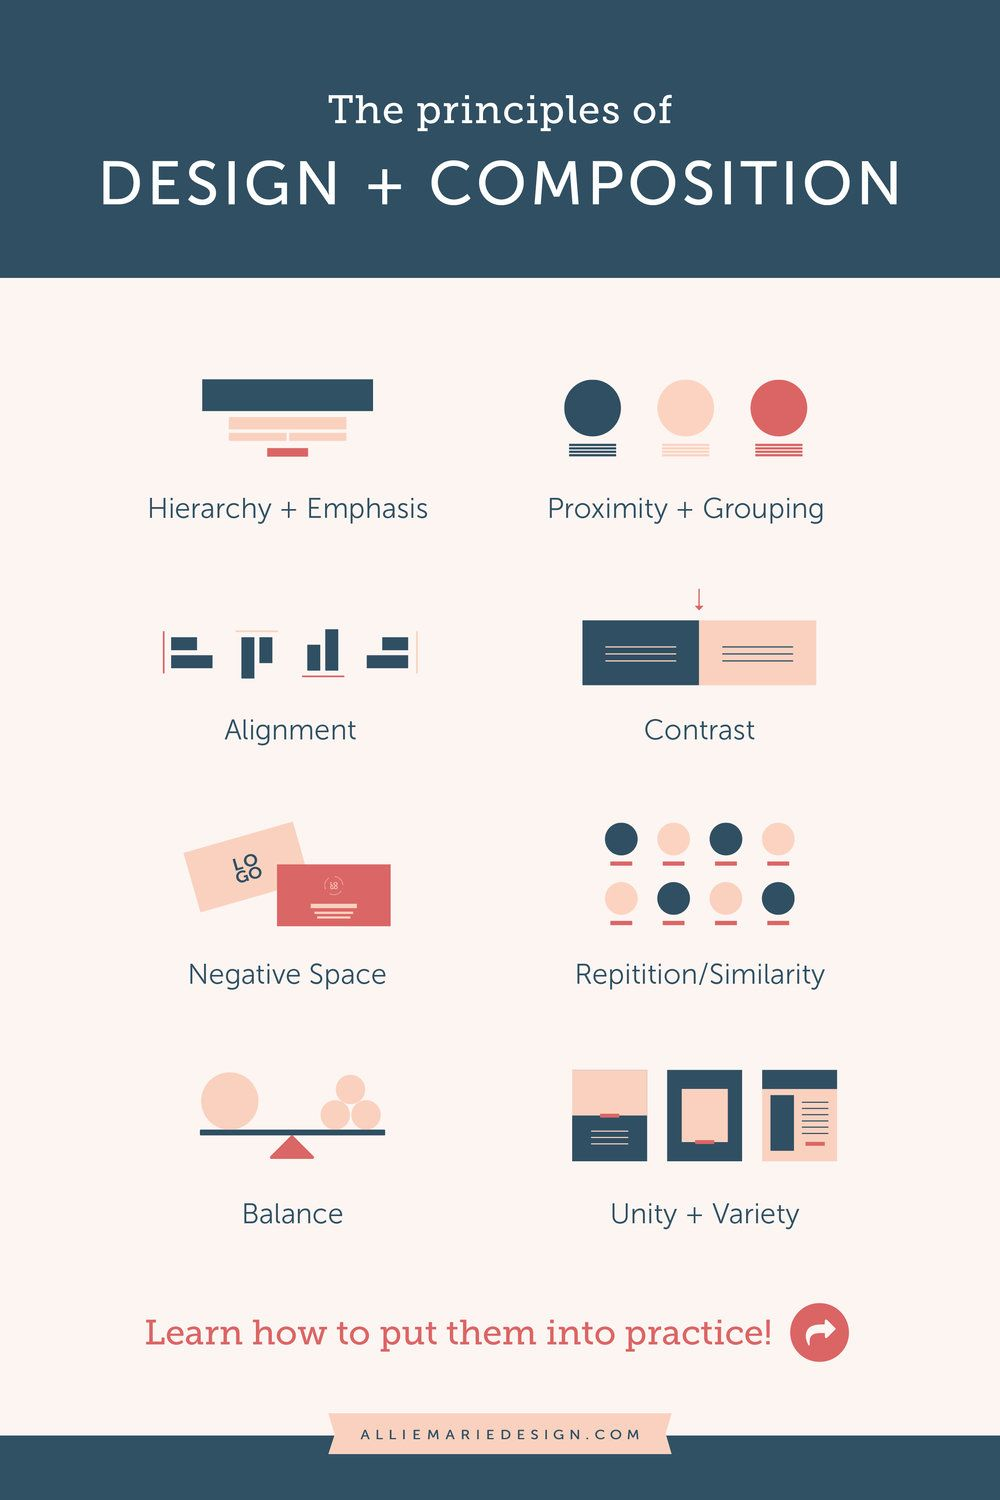 5 Pro Secrets To Improving Your Design Skills Creating Better Marketing Graphics For Your Business Alliemarie Design Graphic Design Lessons Graphic Design Tips Learning Graphic Design